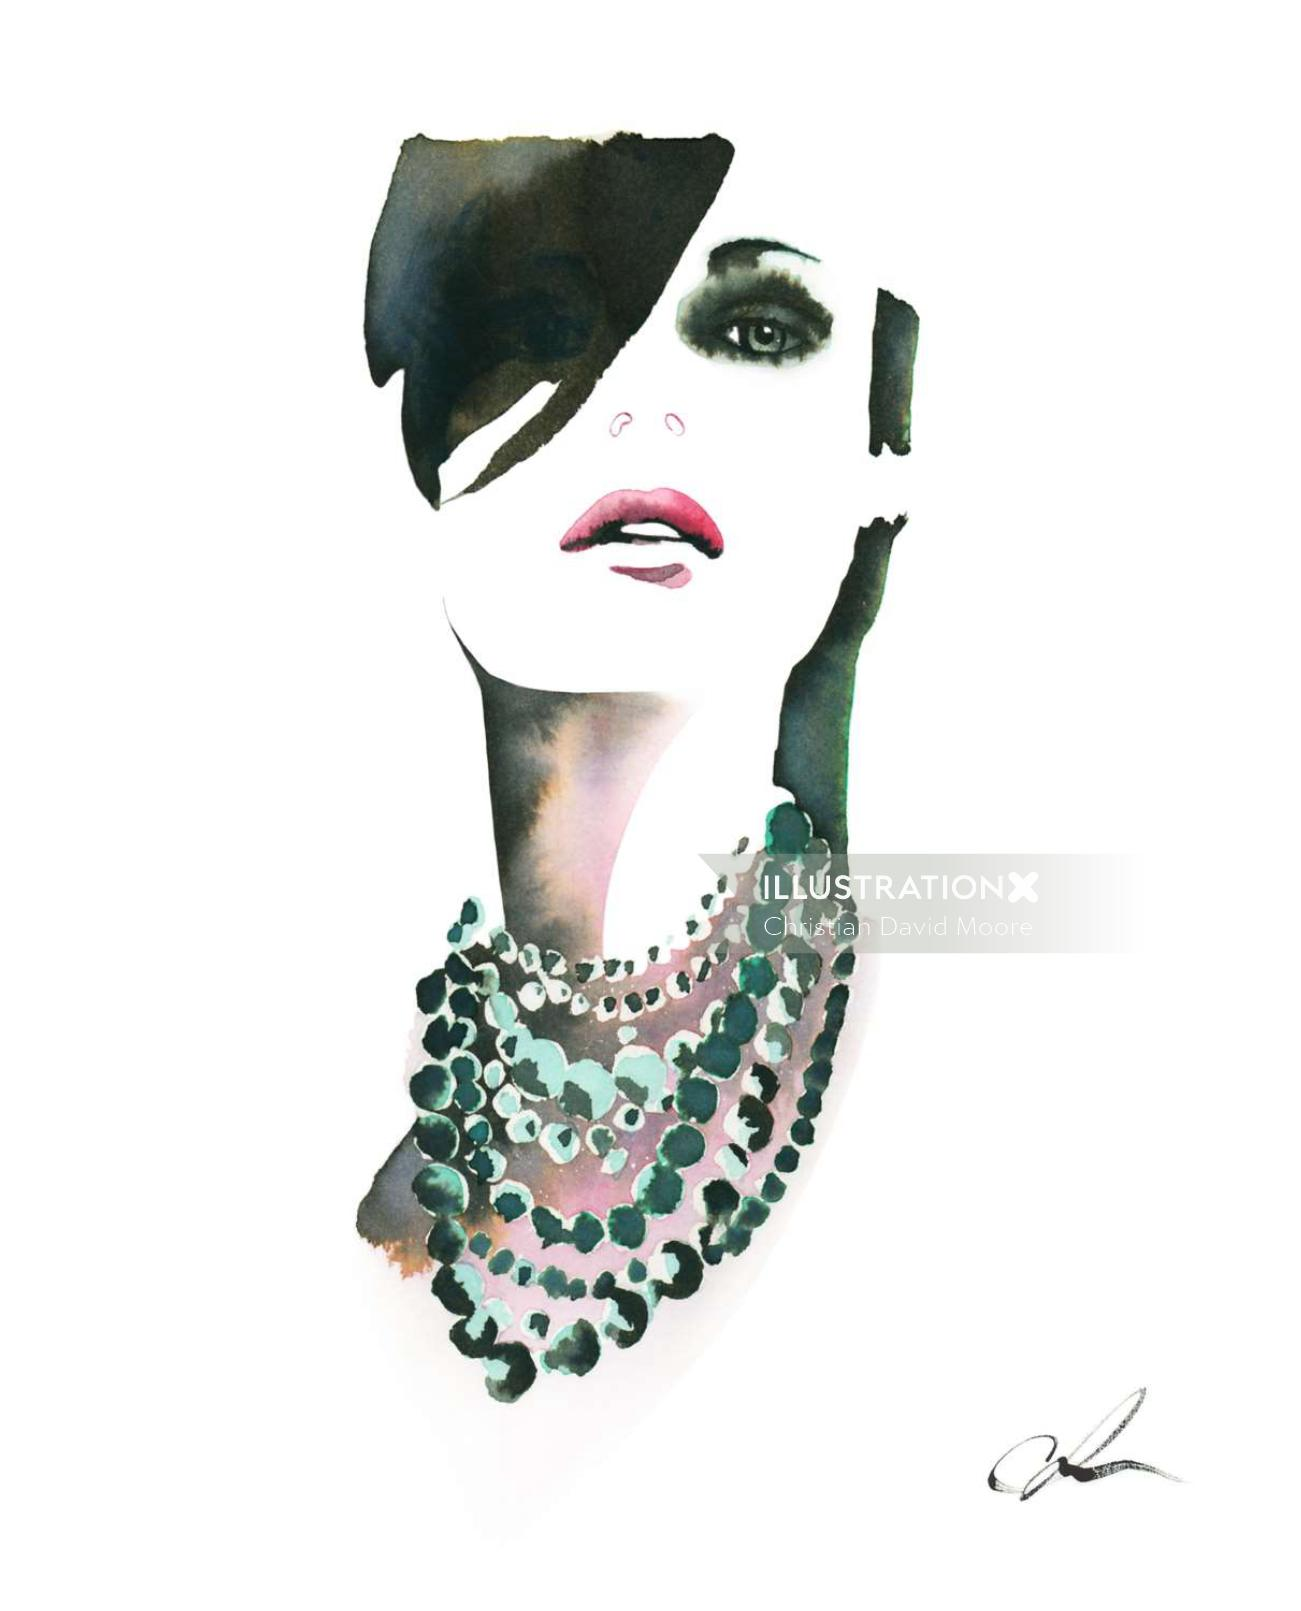 Model in necklace illustration by Christian David Moore